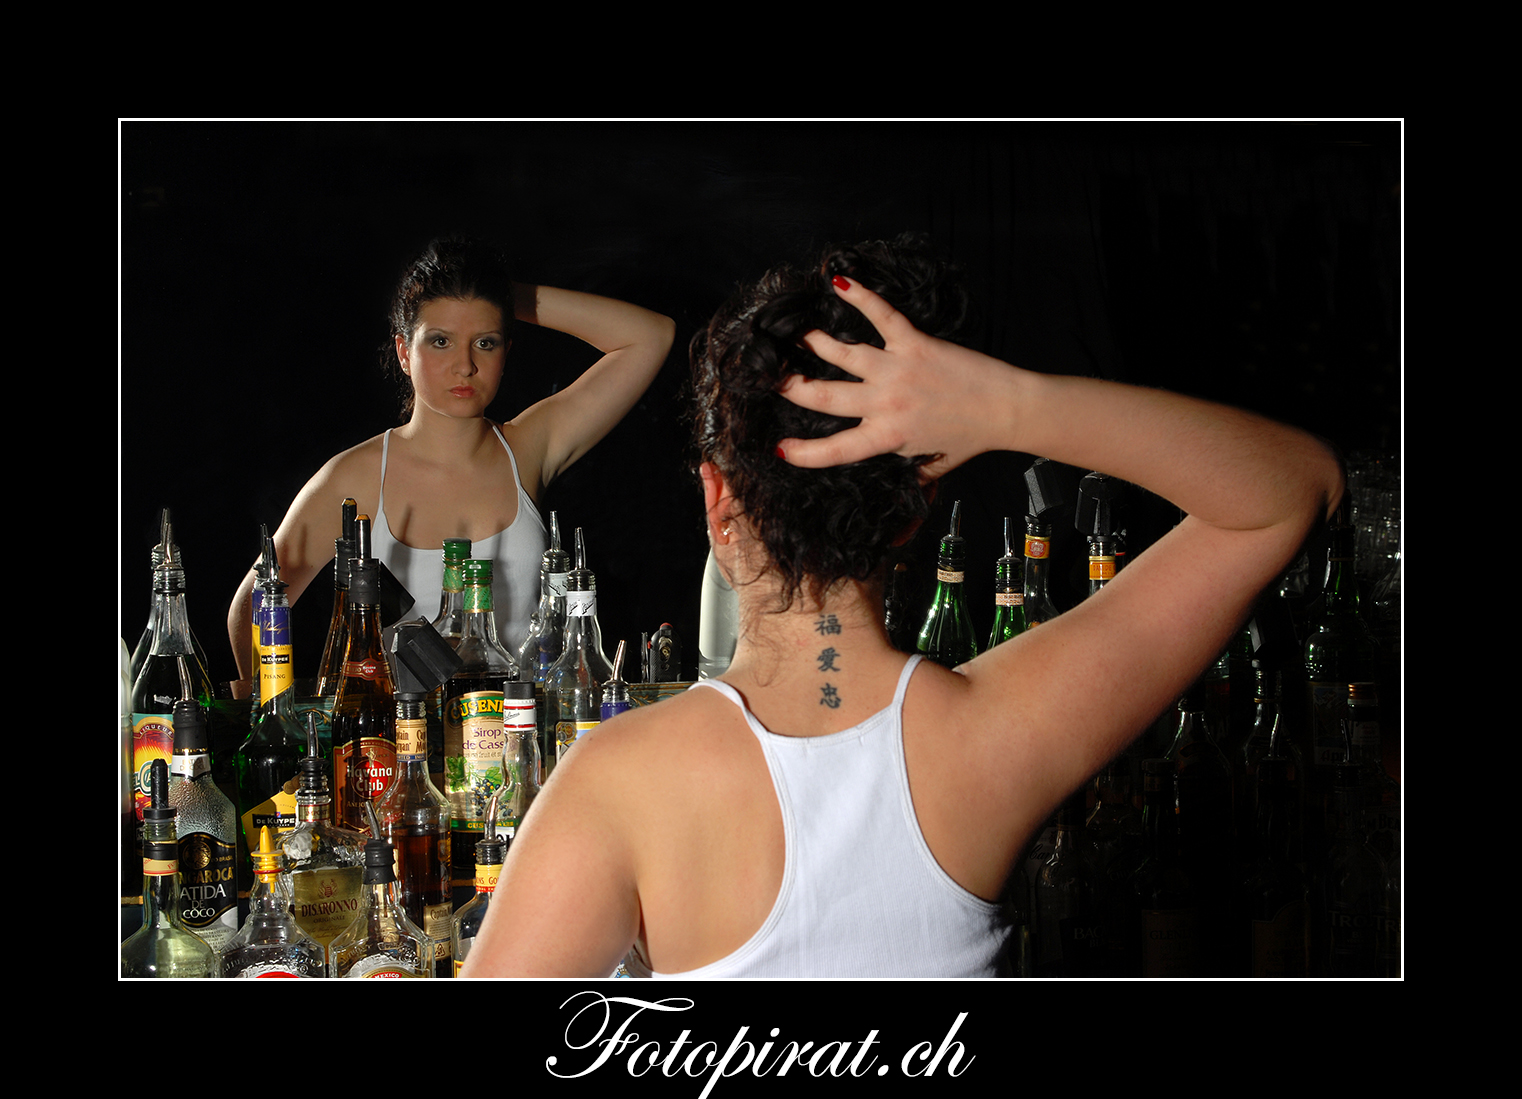 Fotoshooting, On Location, Spiegel, Modelagentur, Fotomodel,